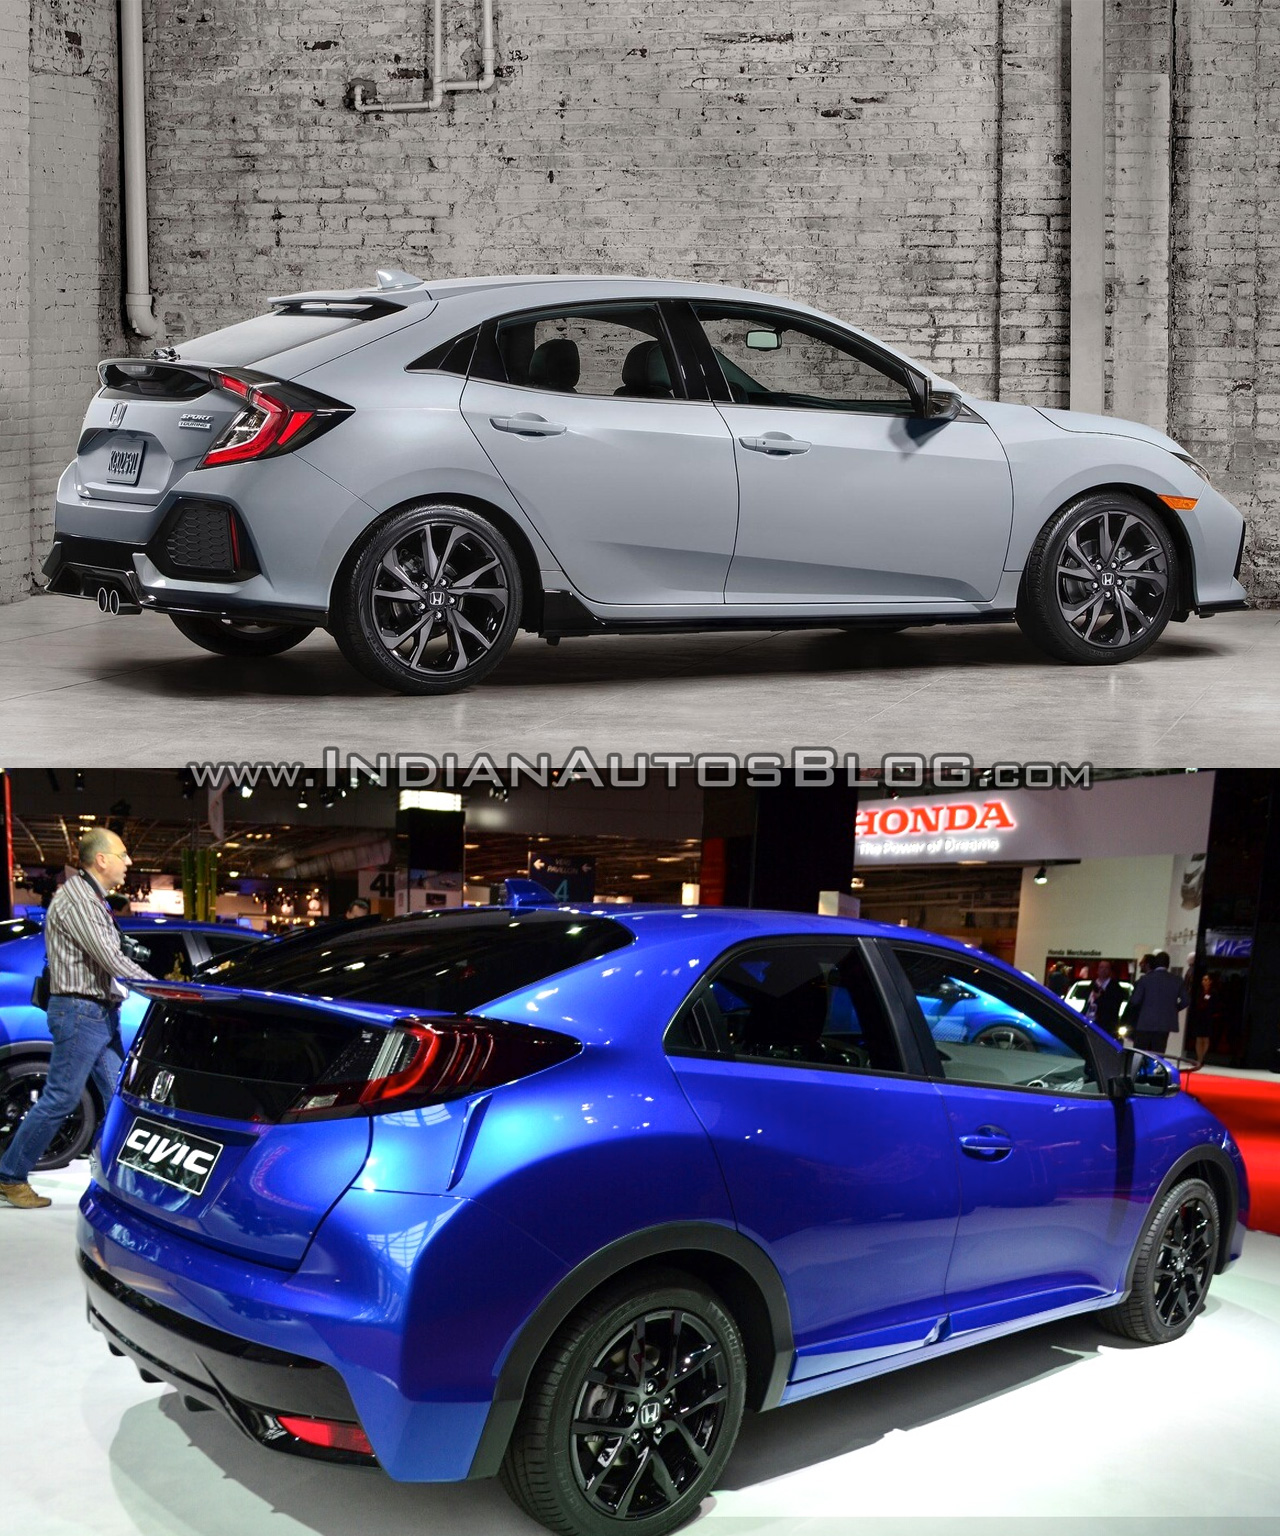 2017 honda civic hatchback vs 2015 honda civic hatchback. Black Bedroom Furniture Sets. Home Design Ideas